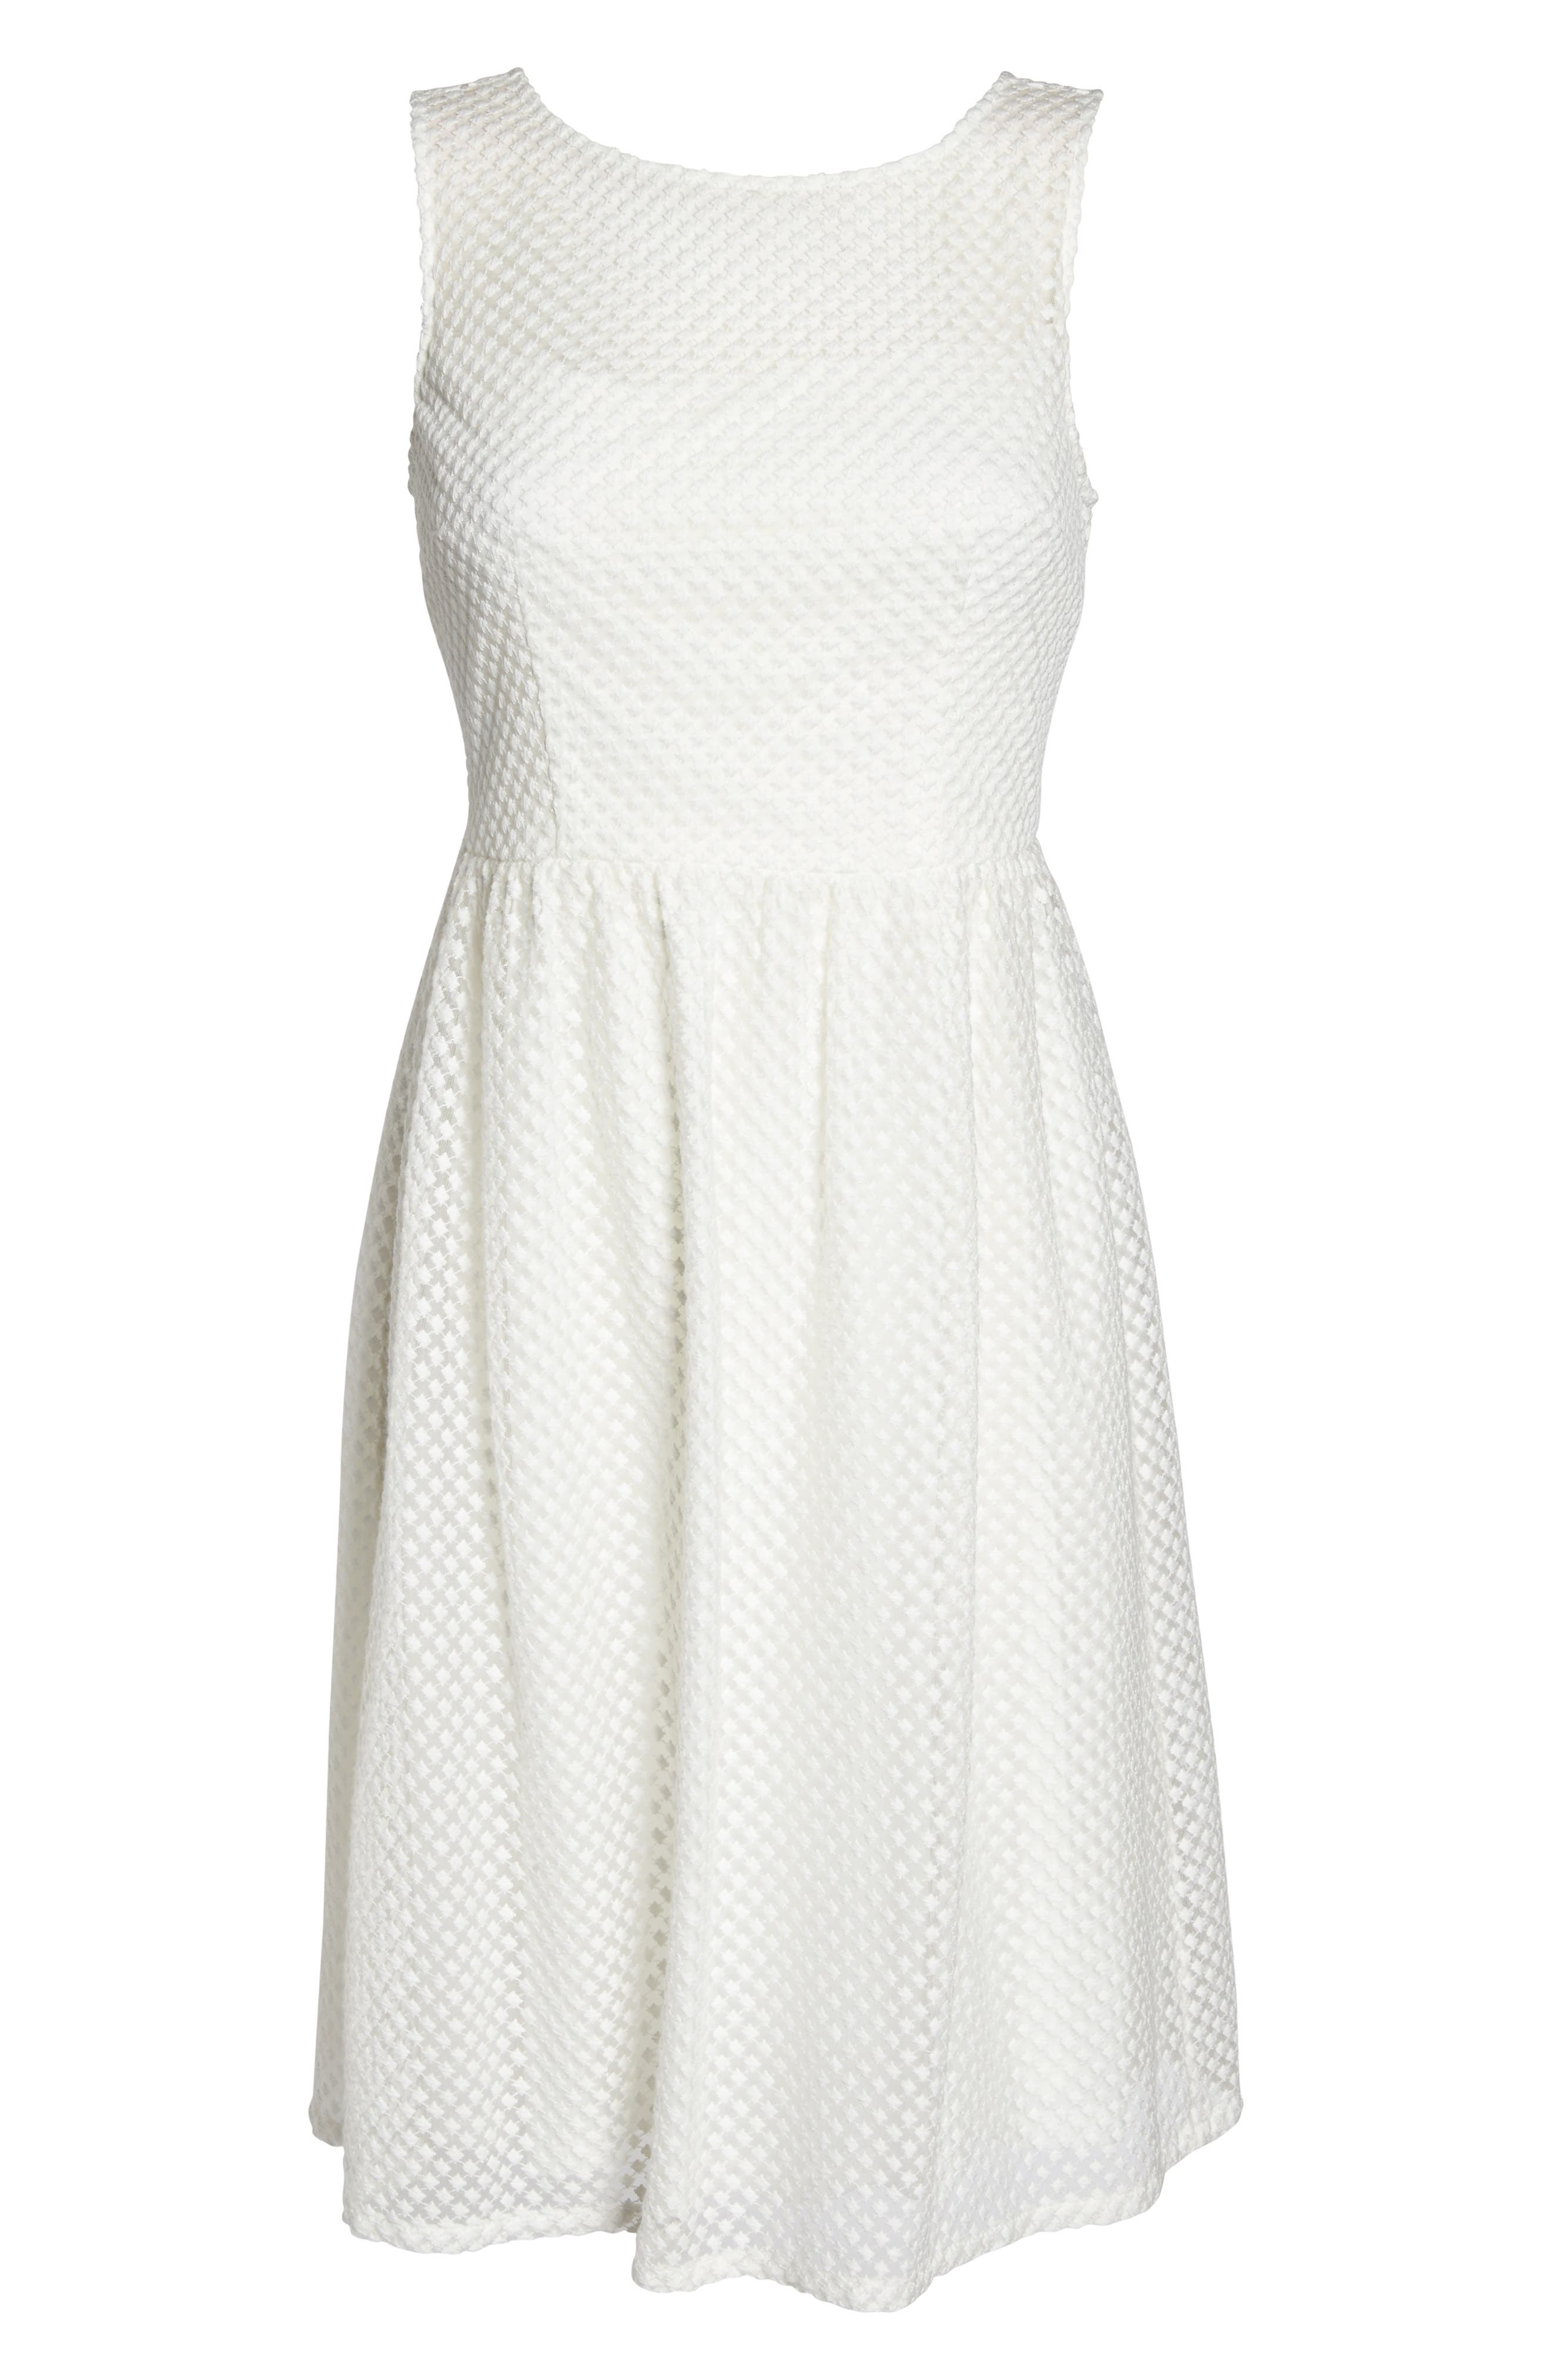 Embroidered Diamonds Fit & Flare Dress,                             Alternate thumbnail 6, color,                             Ivory